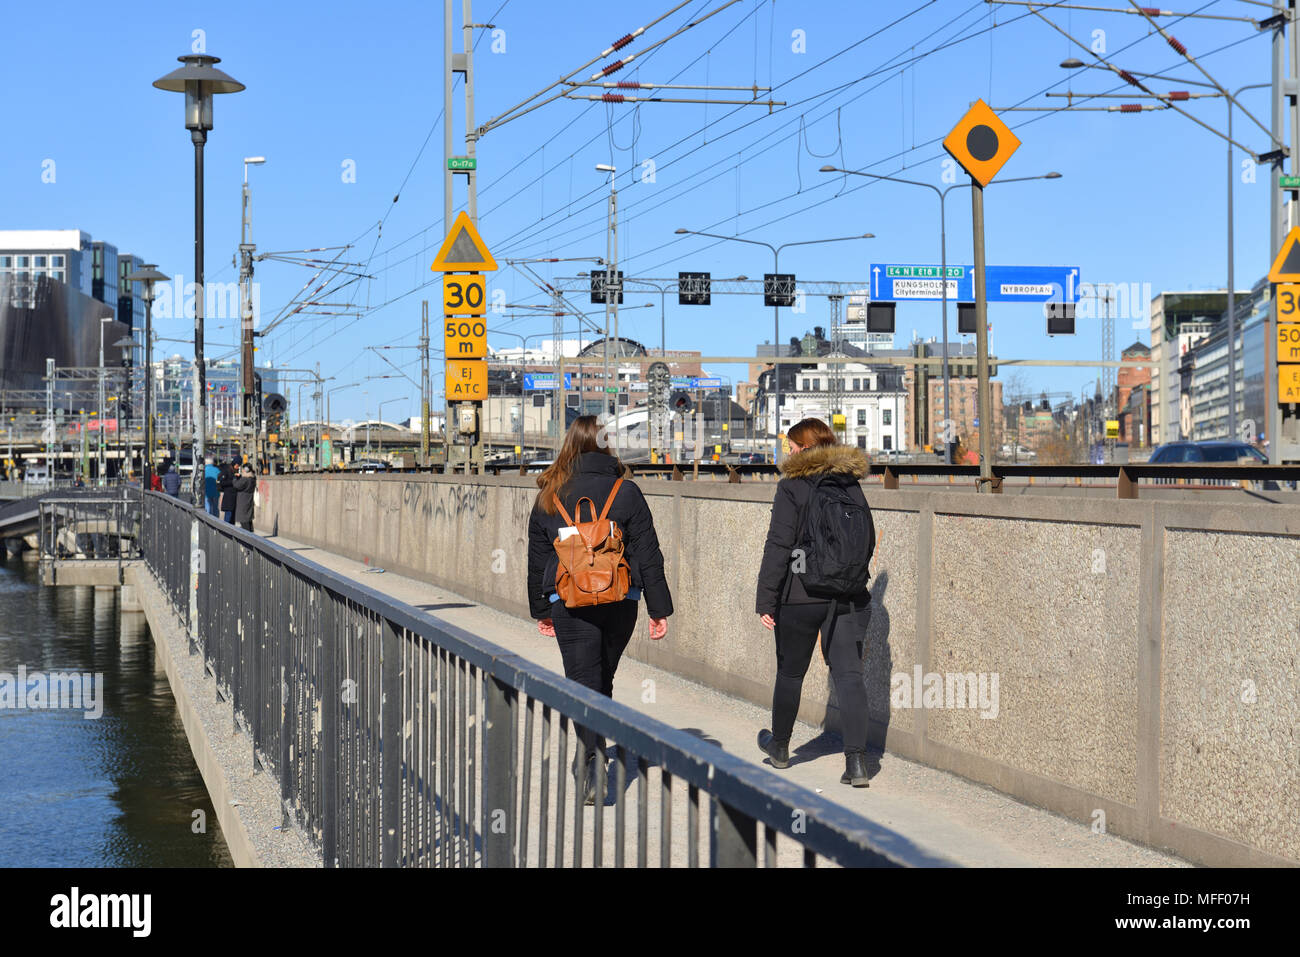 Pont central (Centralbron) Photo Stock